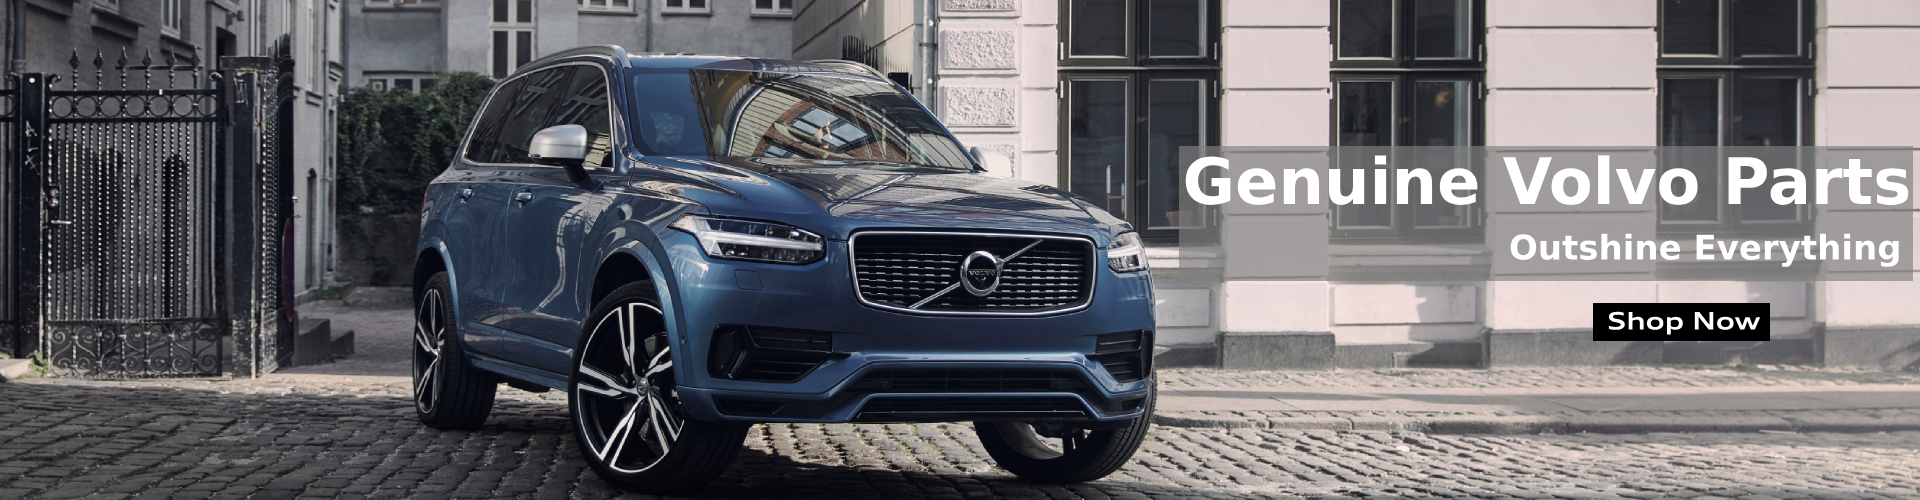 OEM Volvo Parts and Accessories